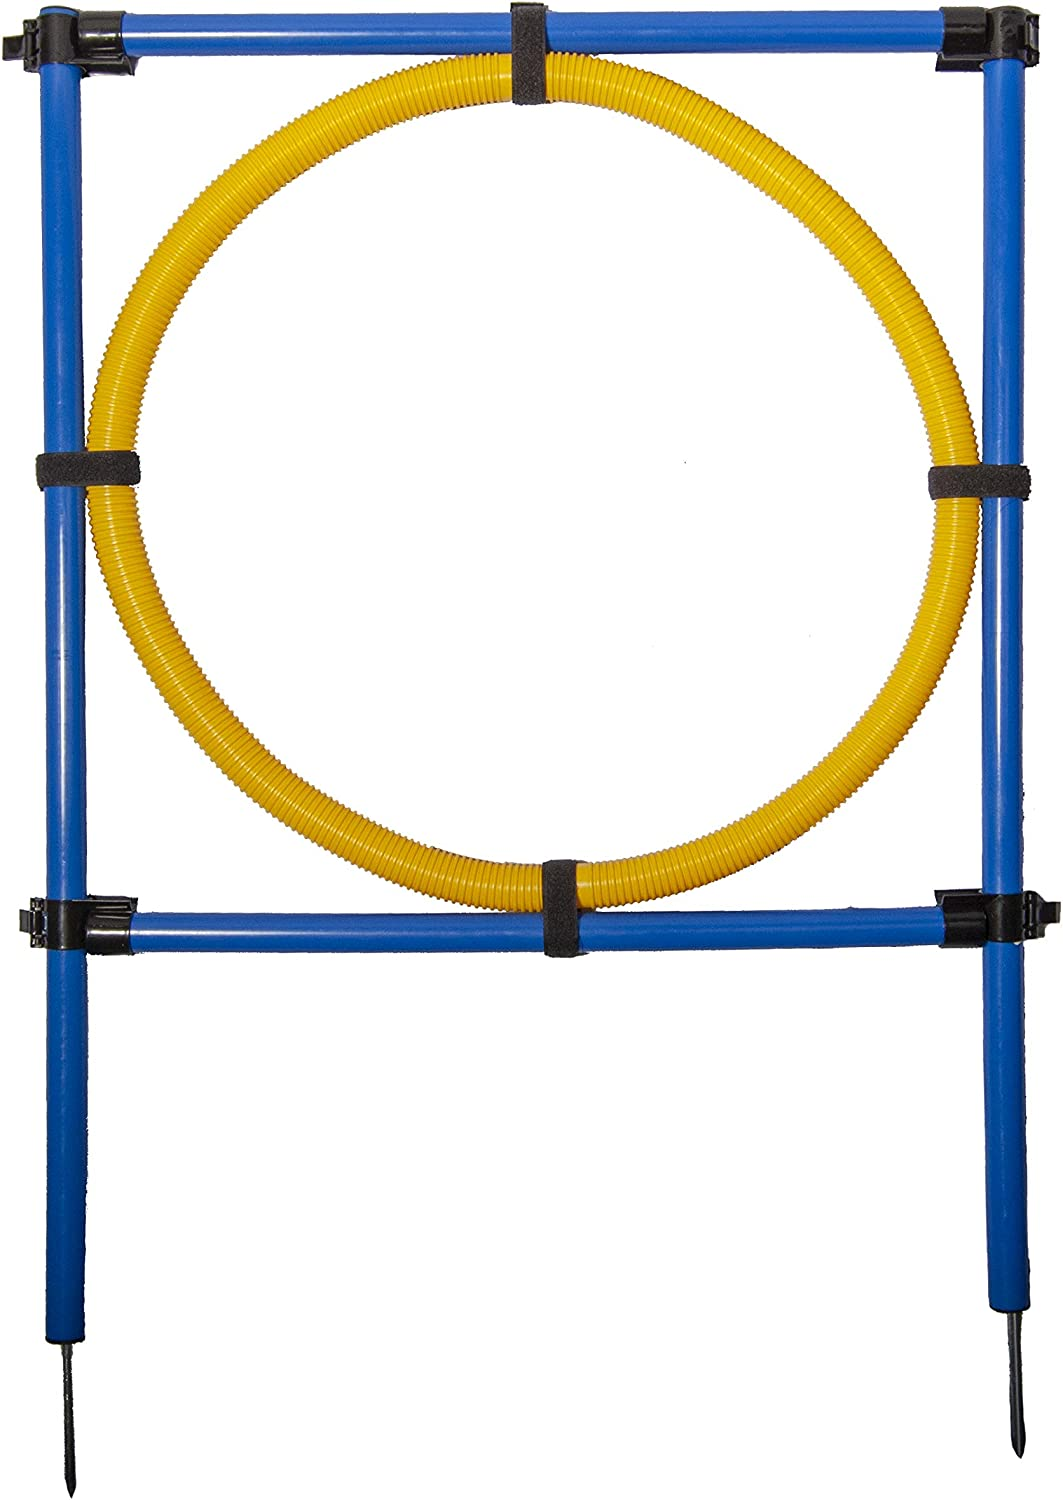 Pet Brands Regular store Agility Hoop Jump Today's only Dog